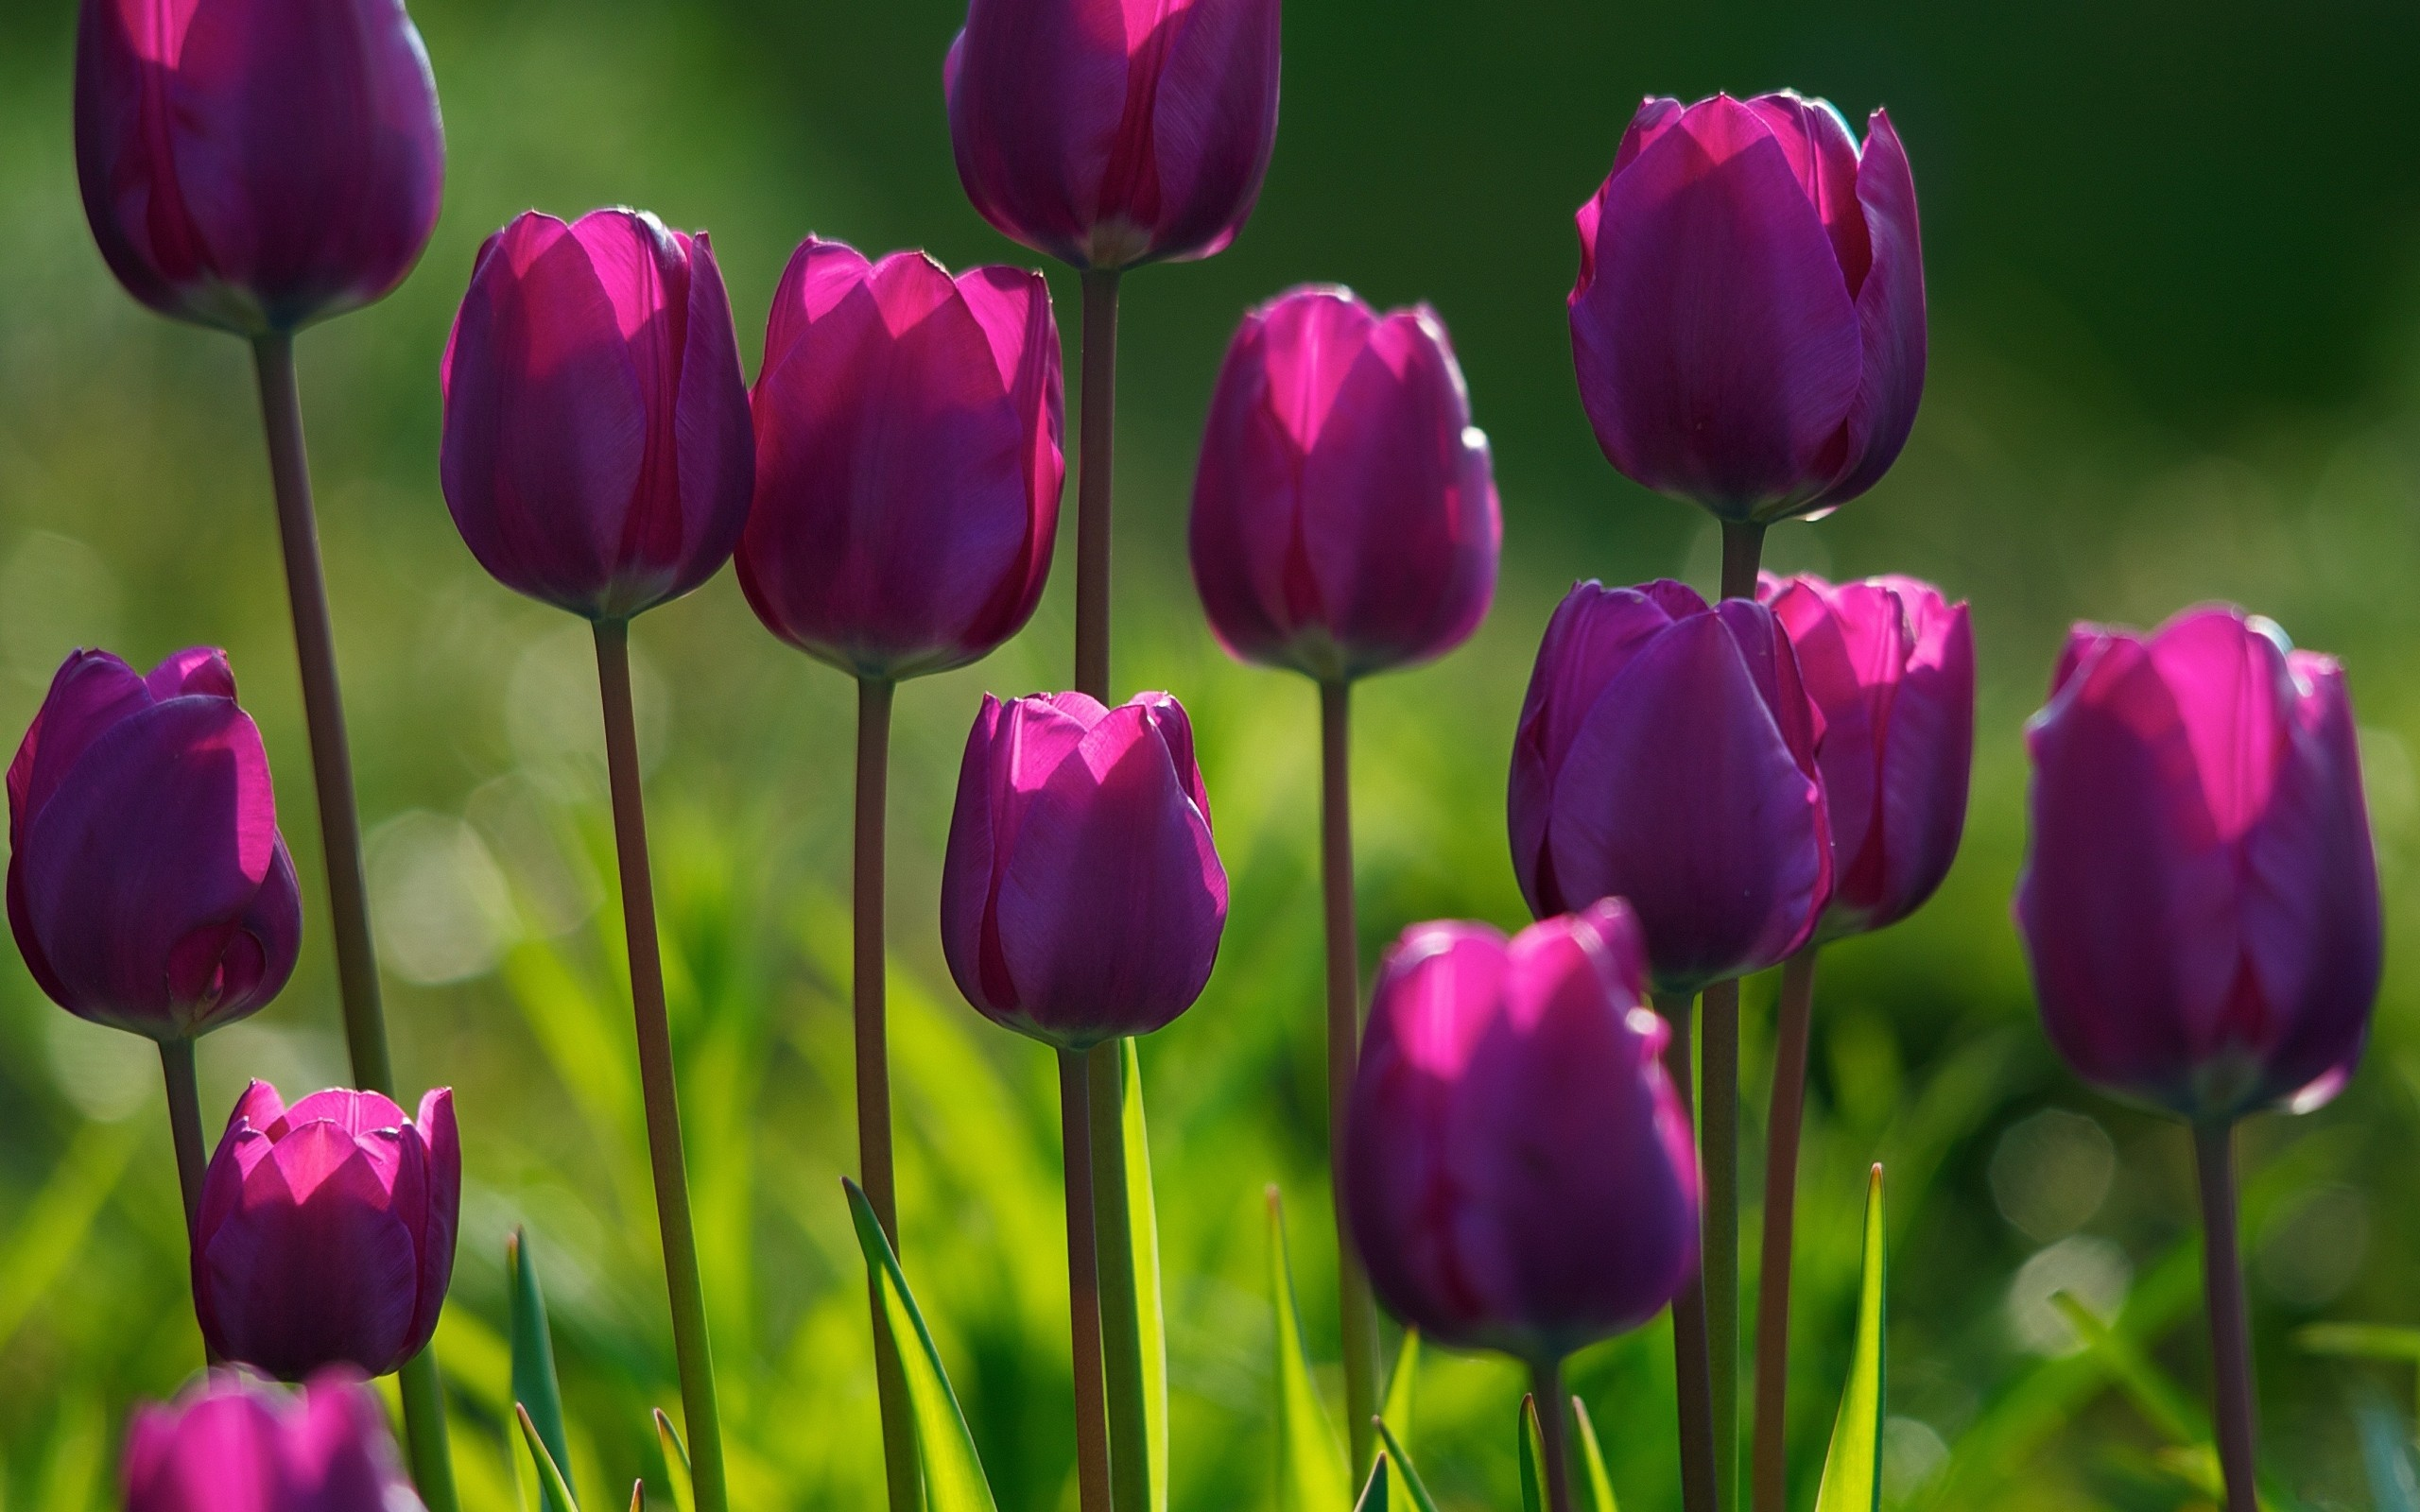 Beautiful tulips growing on the lawn